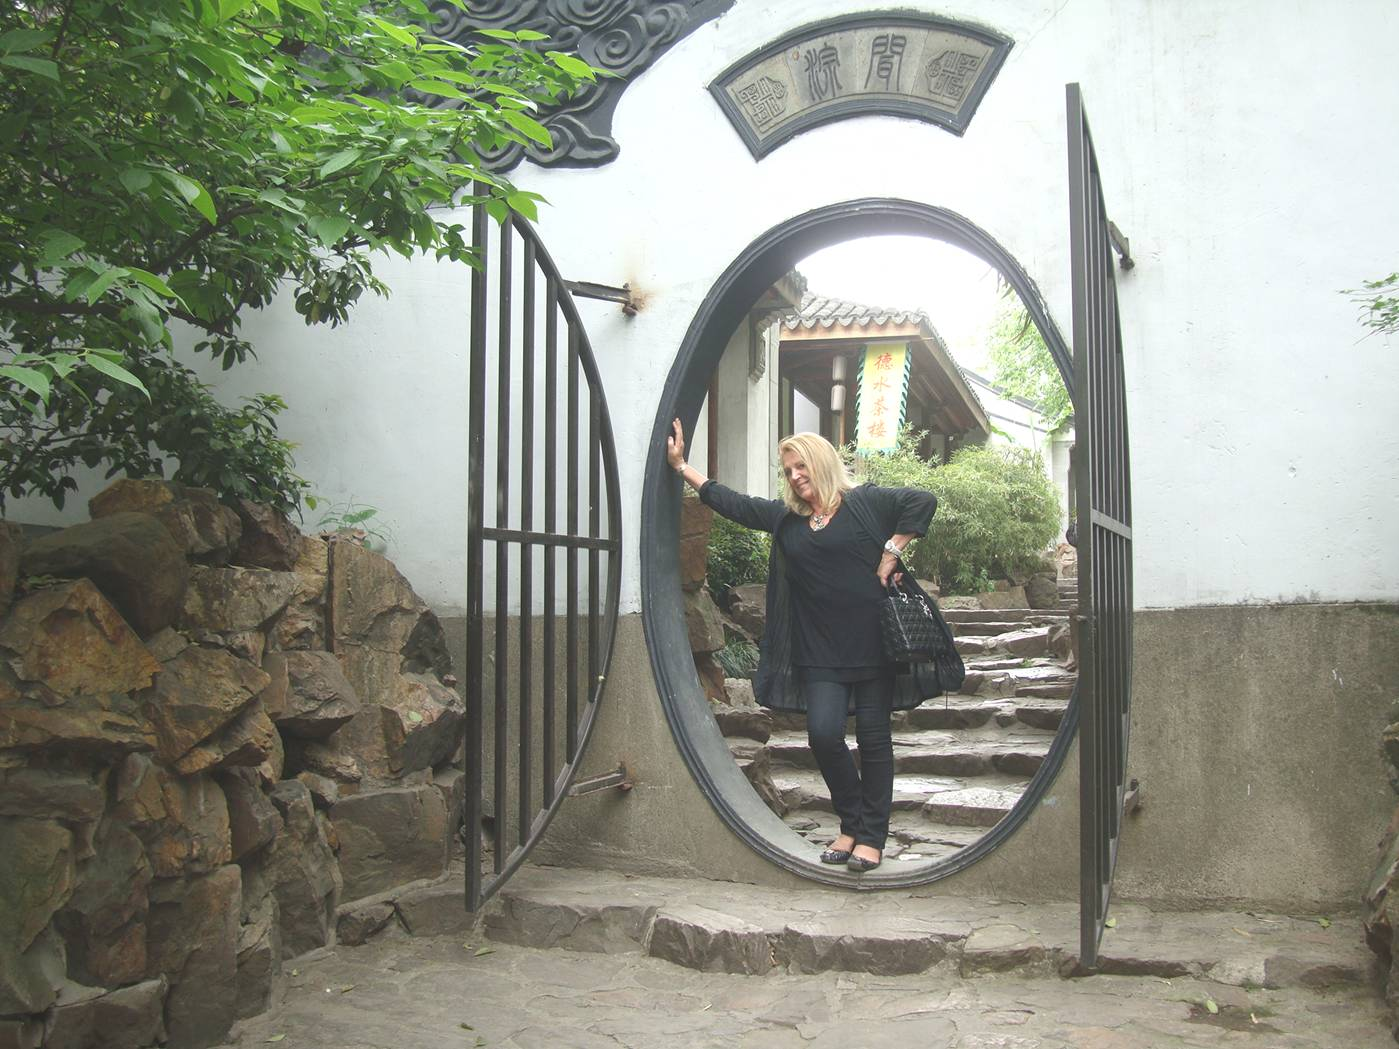 Picture:  Our wonderful Australian friend, Marion, camps it up in the round gateway.  Xi Hui Park, Wuxi, China